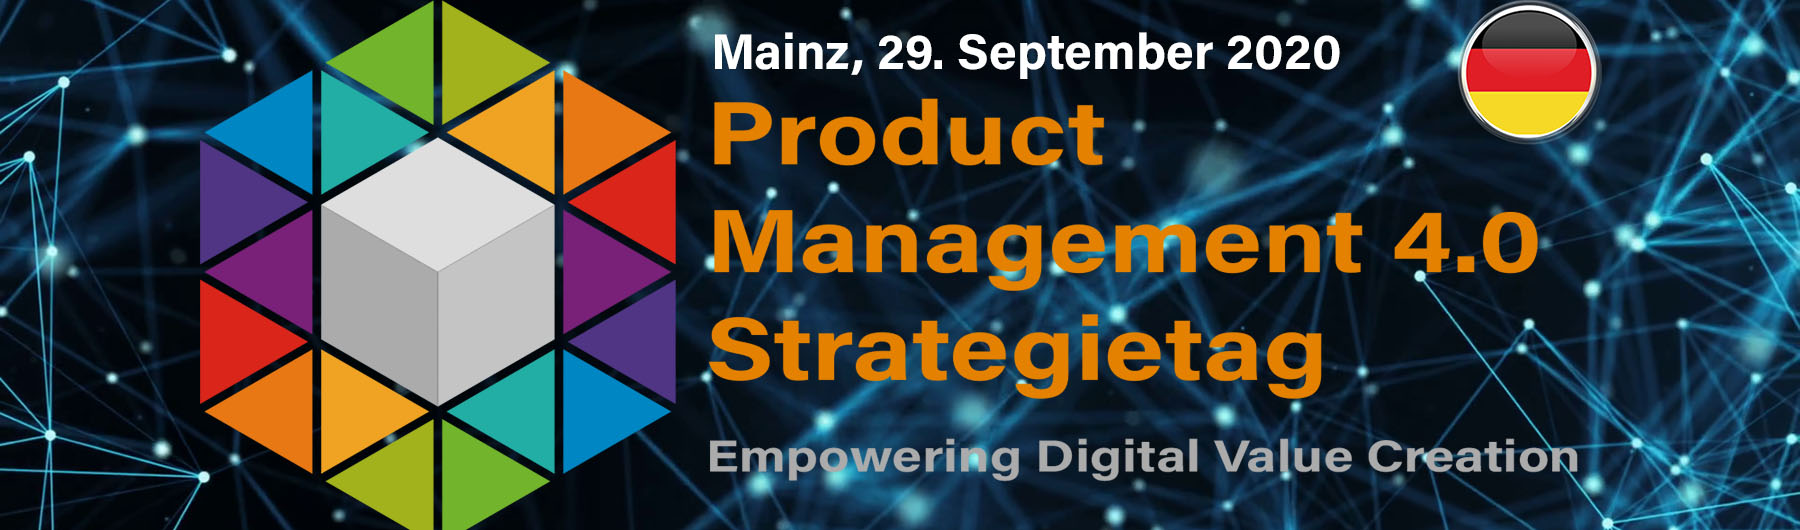 Product Management 4.0 Strategietag Mainz 2020